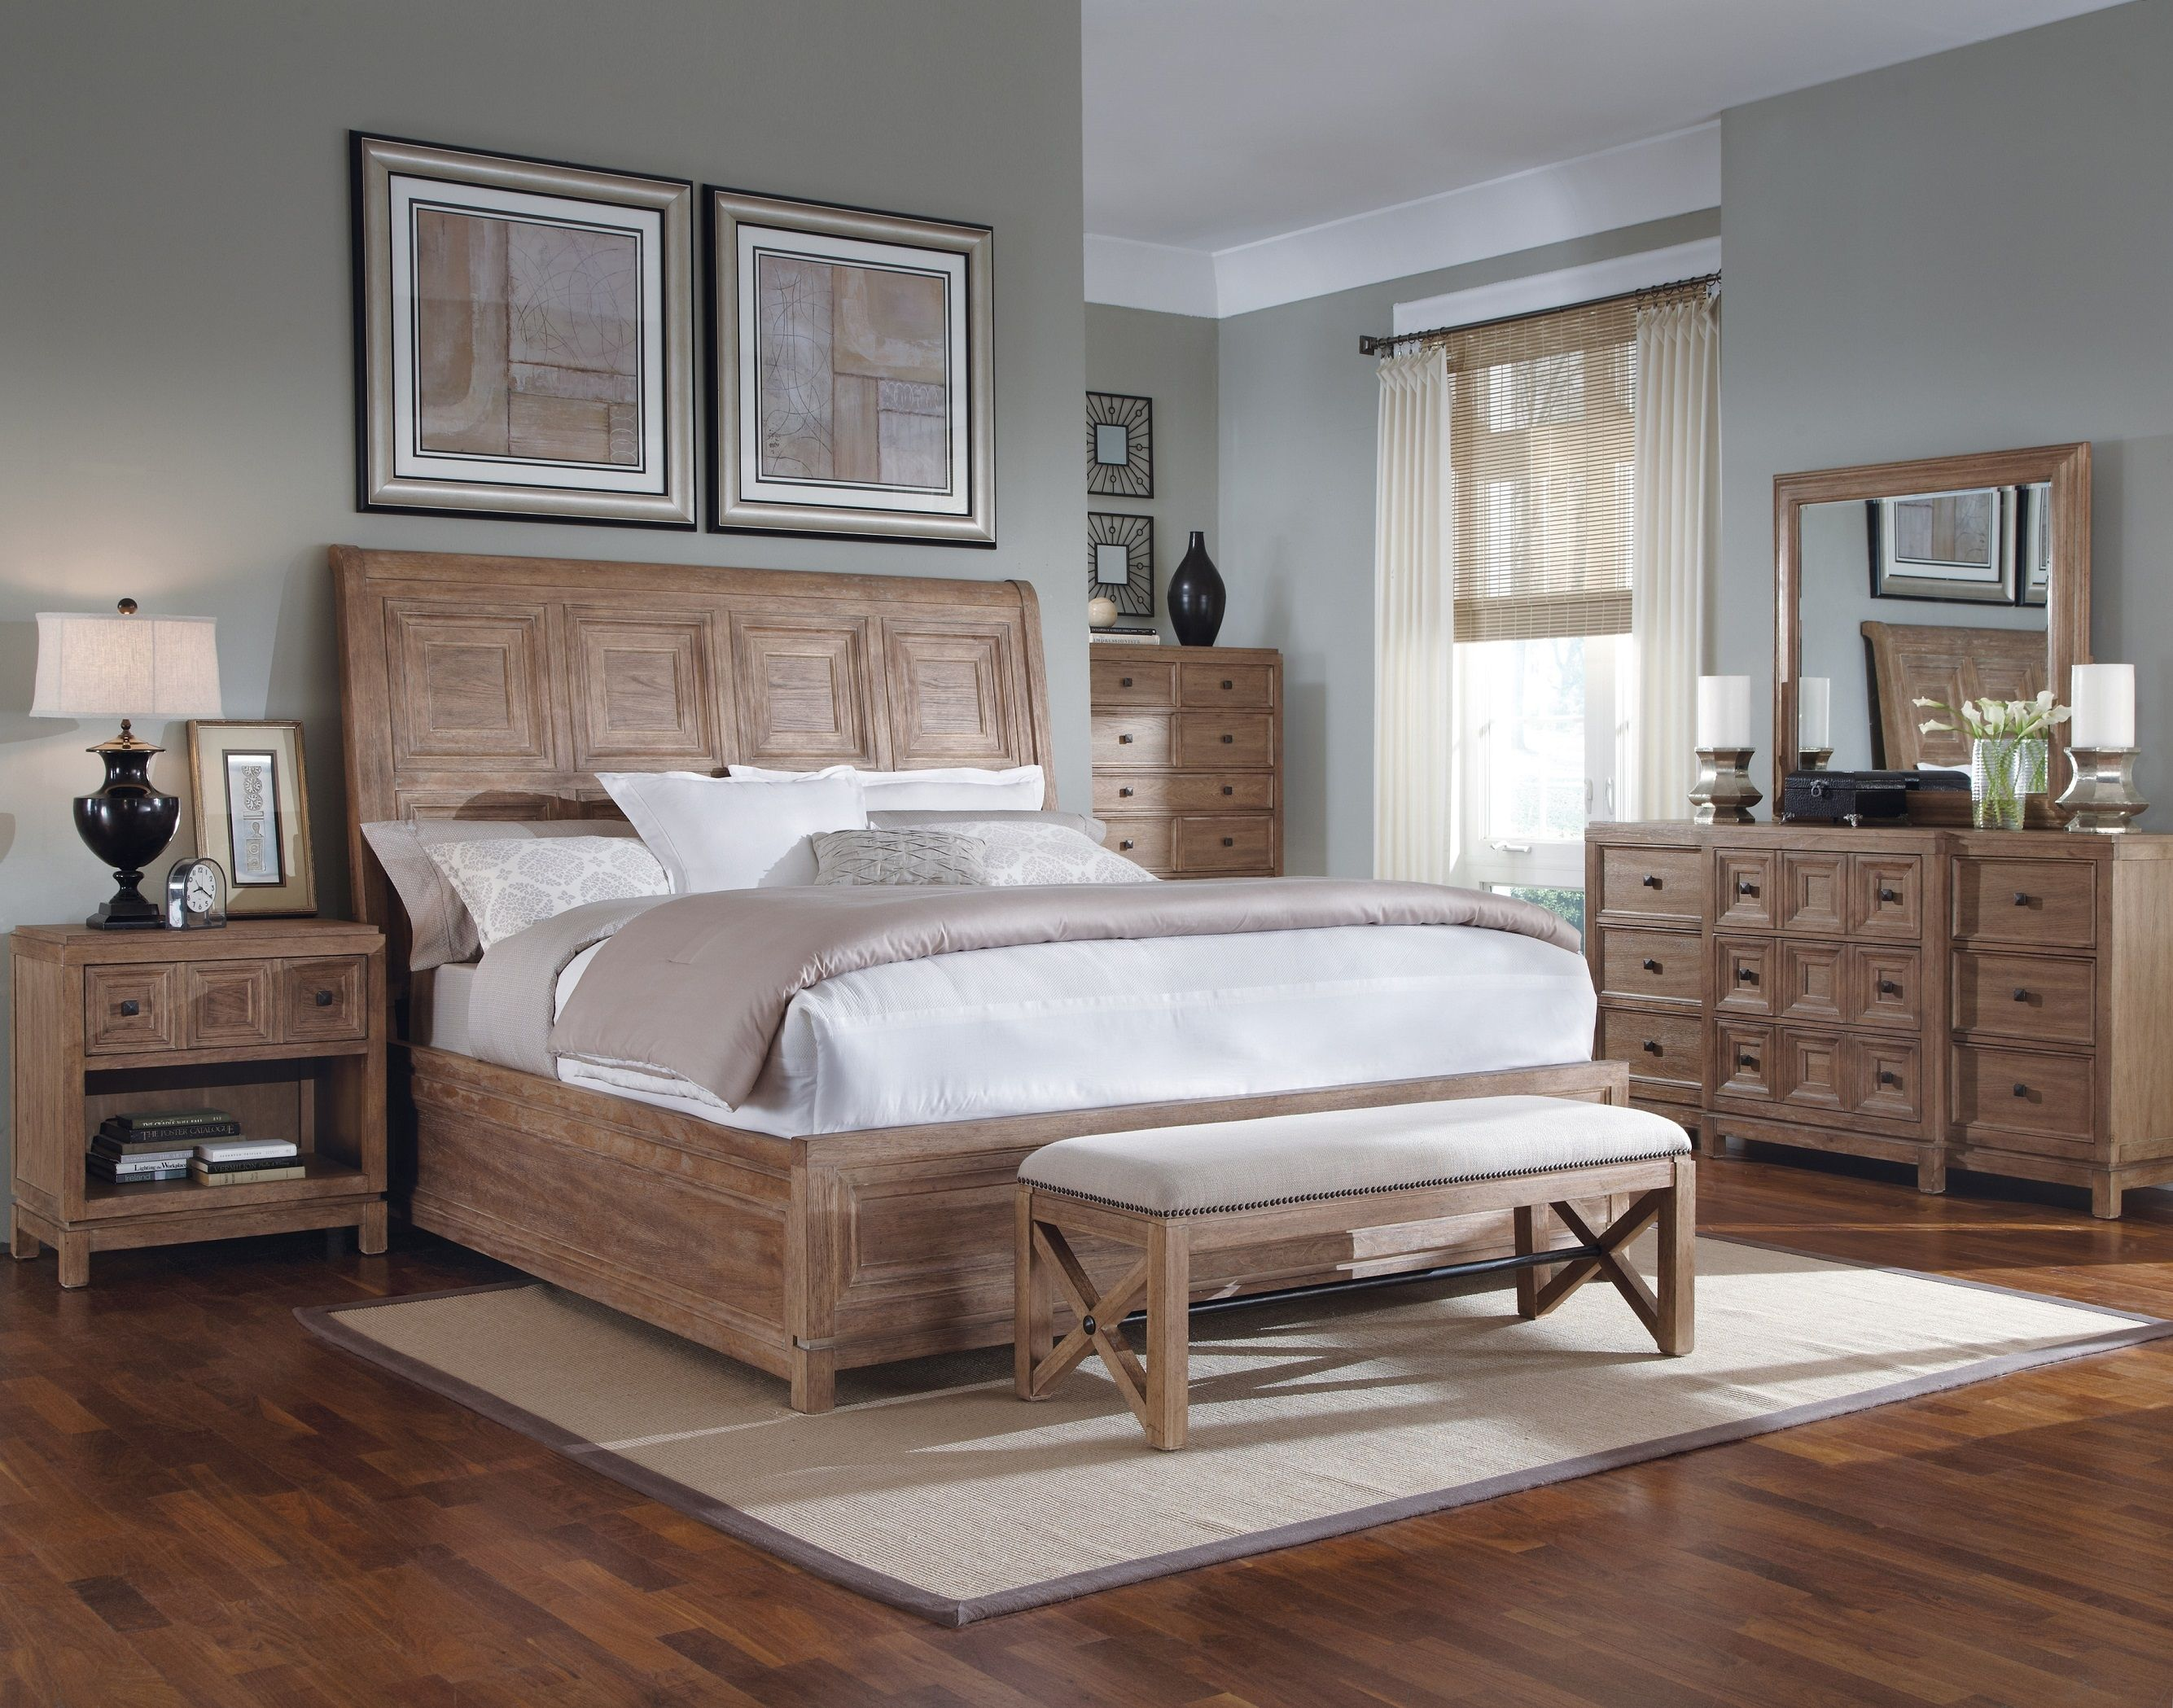 White Oak Bedroom Furniture Sets Oak Bedroom Furniture Oak Bedroom Furniture Sets Contemporary Bedroom Furniture Sets